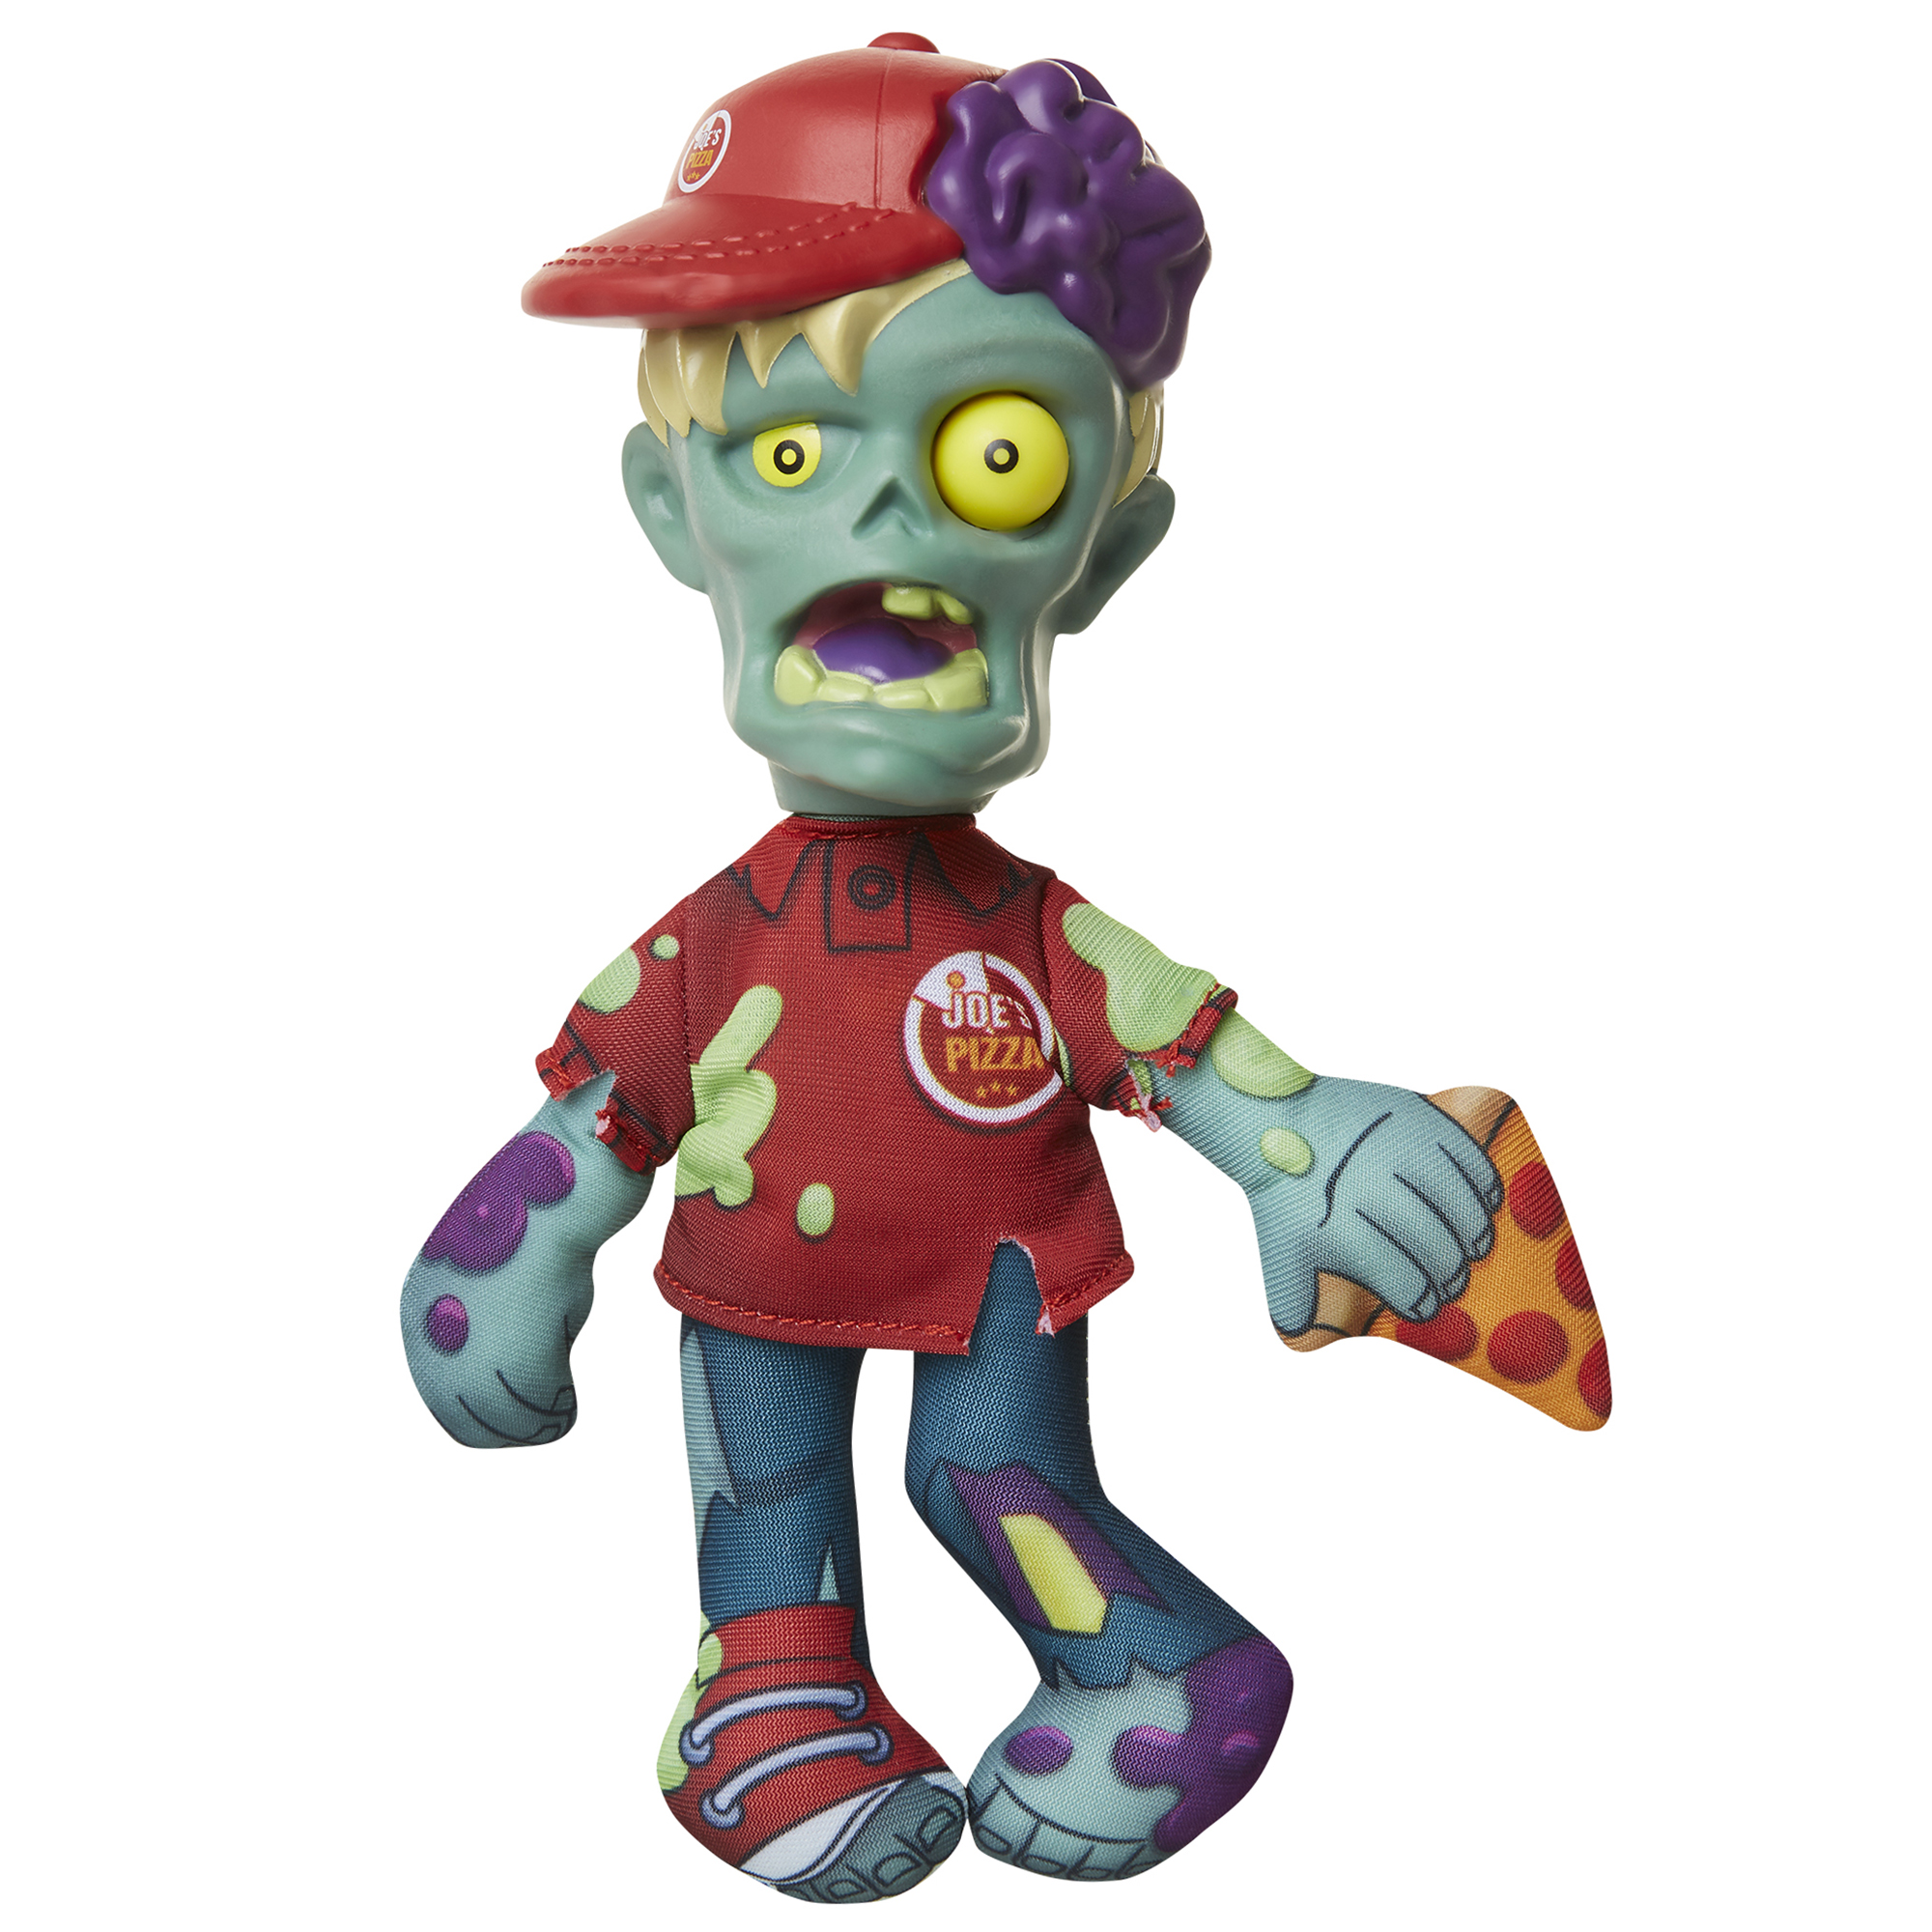 Pizza Guy Zombie Plush